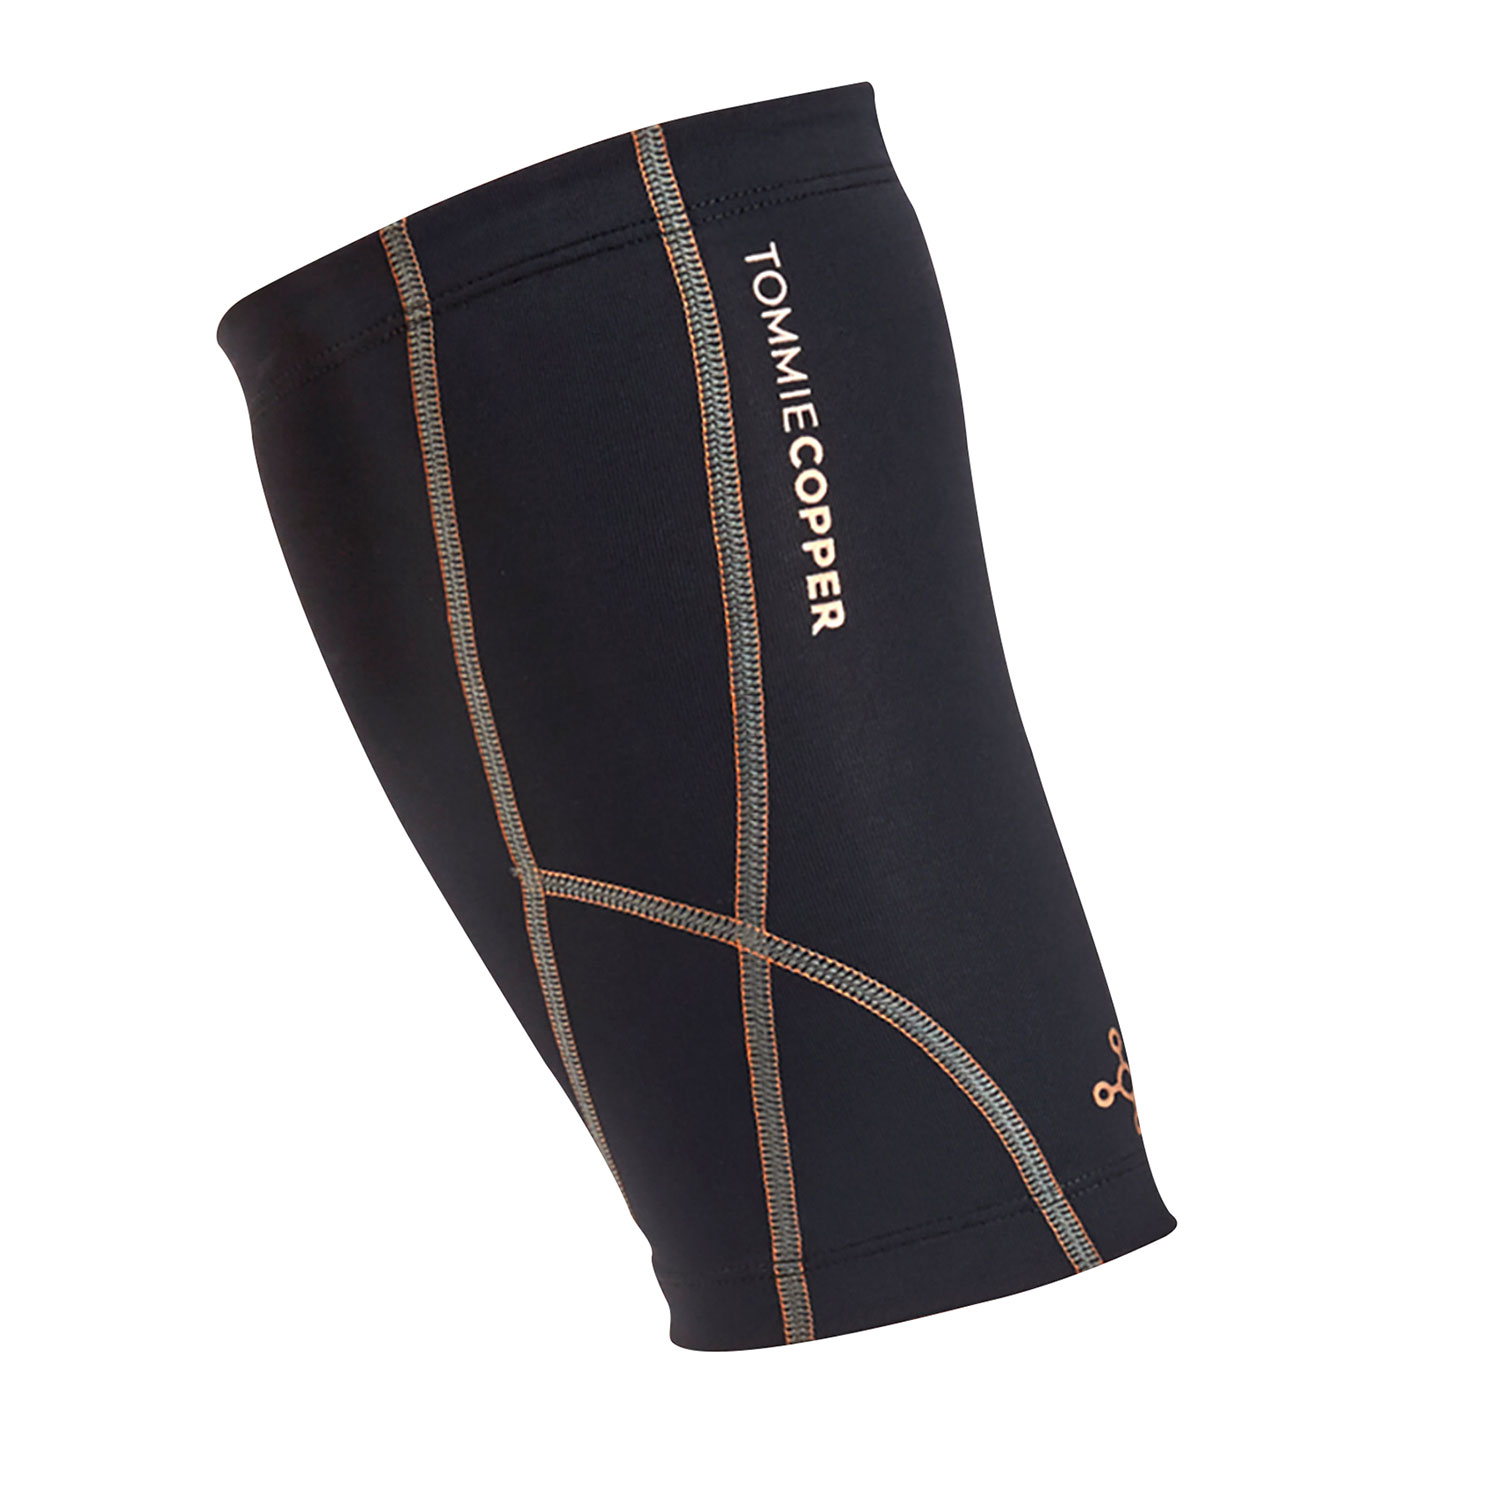 Tommie Copper Women's Performance Compression Quad Sleeve